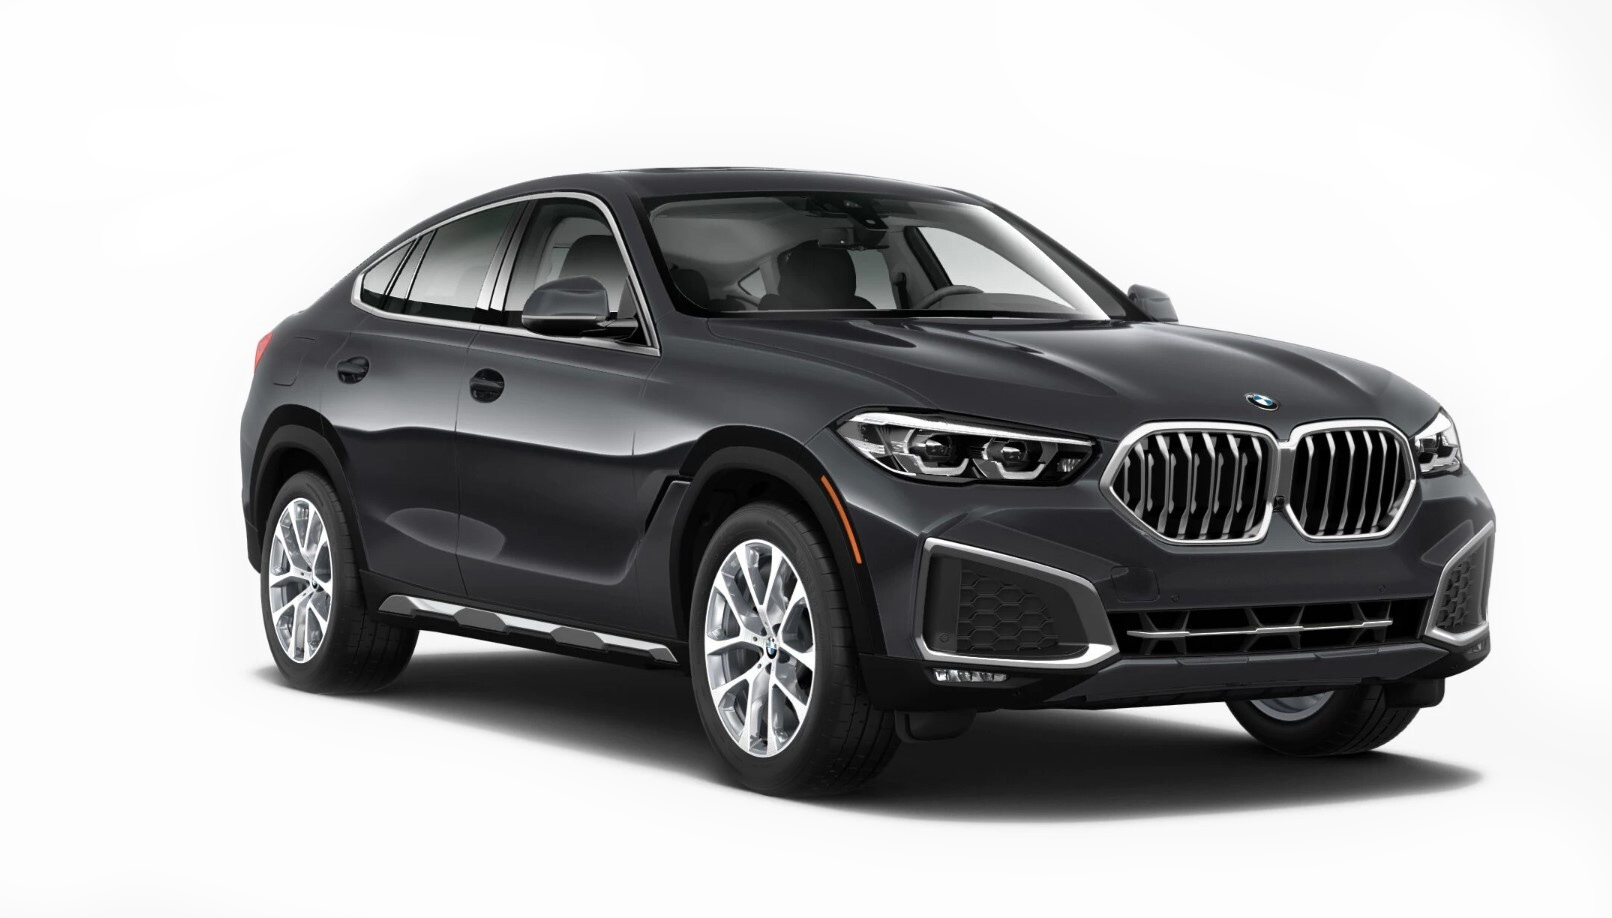 2021 bmw x6 m50i full specs, features and price | carbuzz